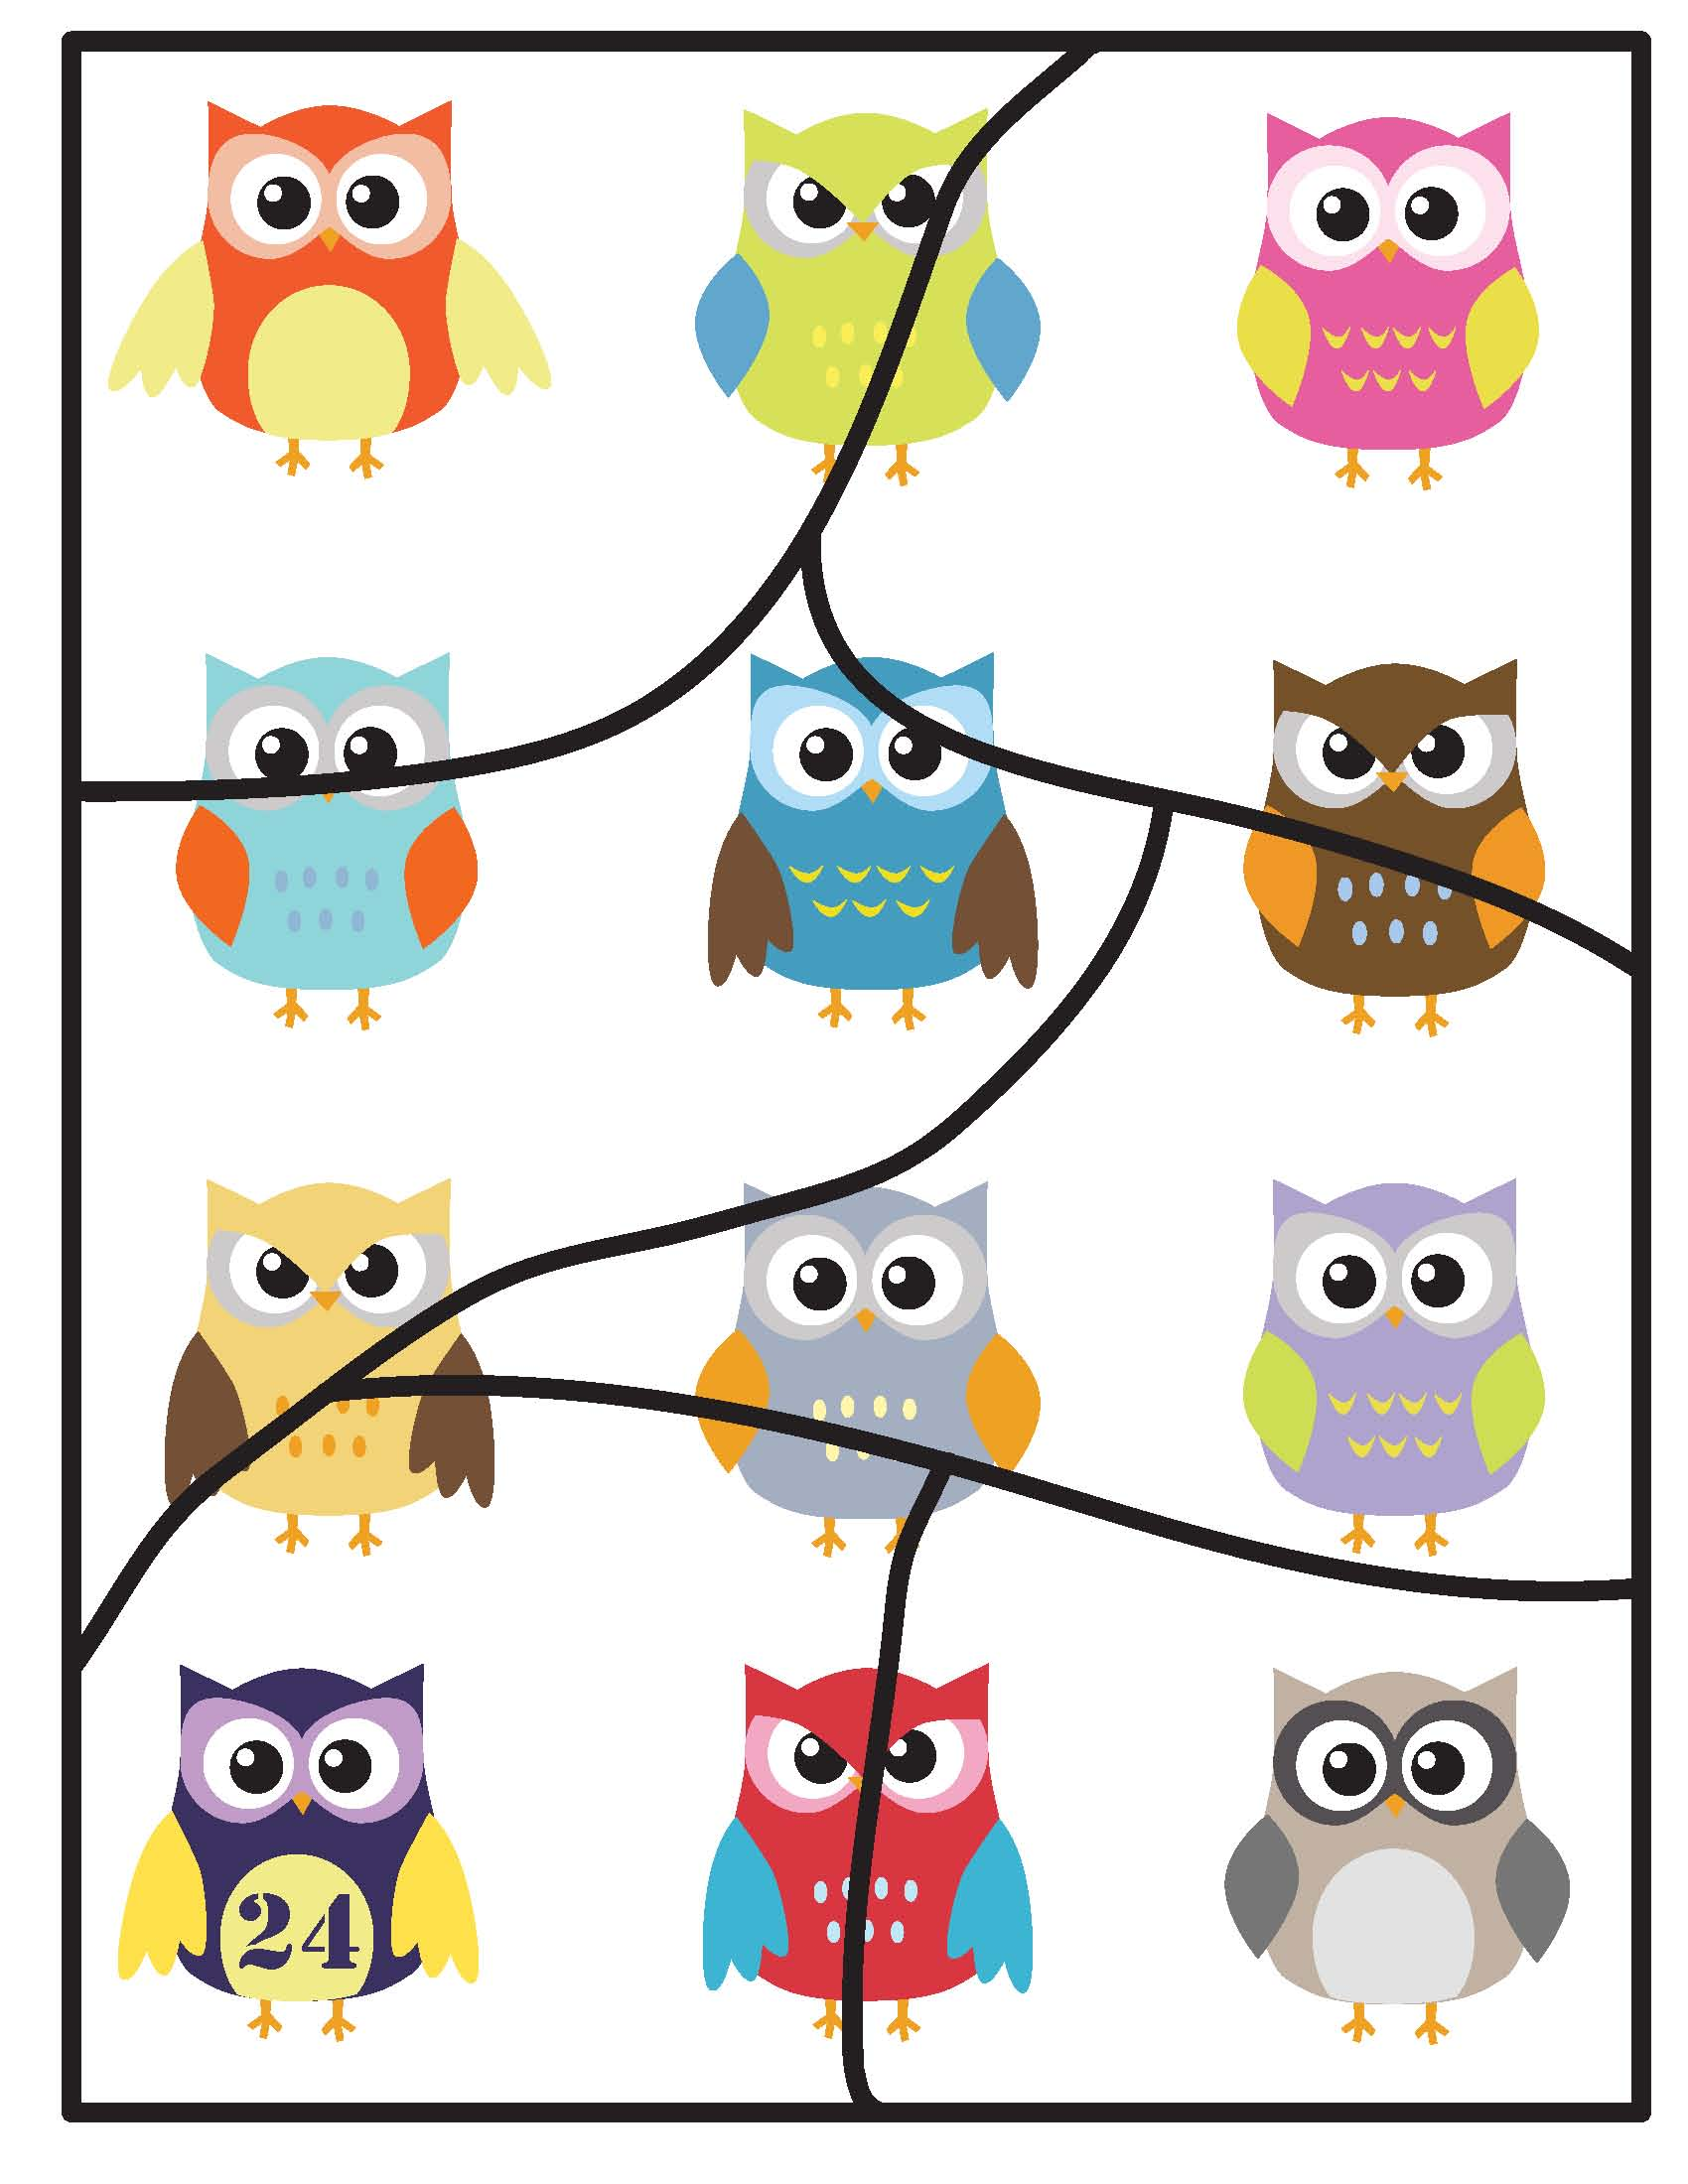 Toddler Six Piece Puzzle Owls